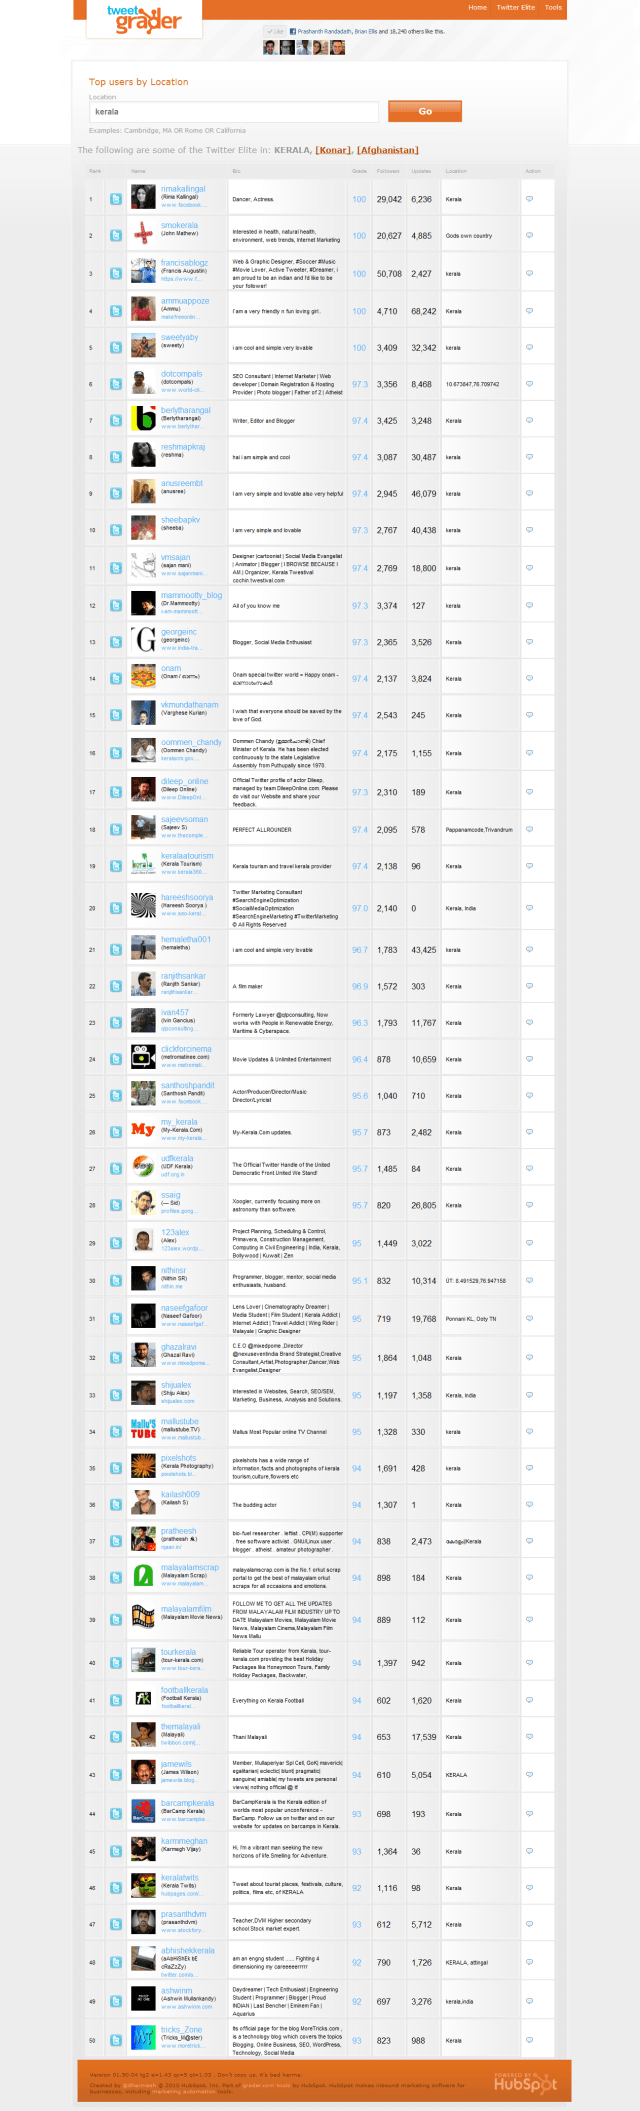 Top 100 Twiter users from Kerala, India